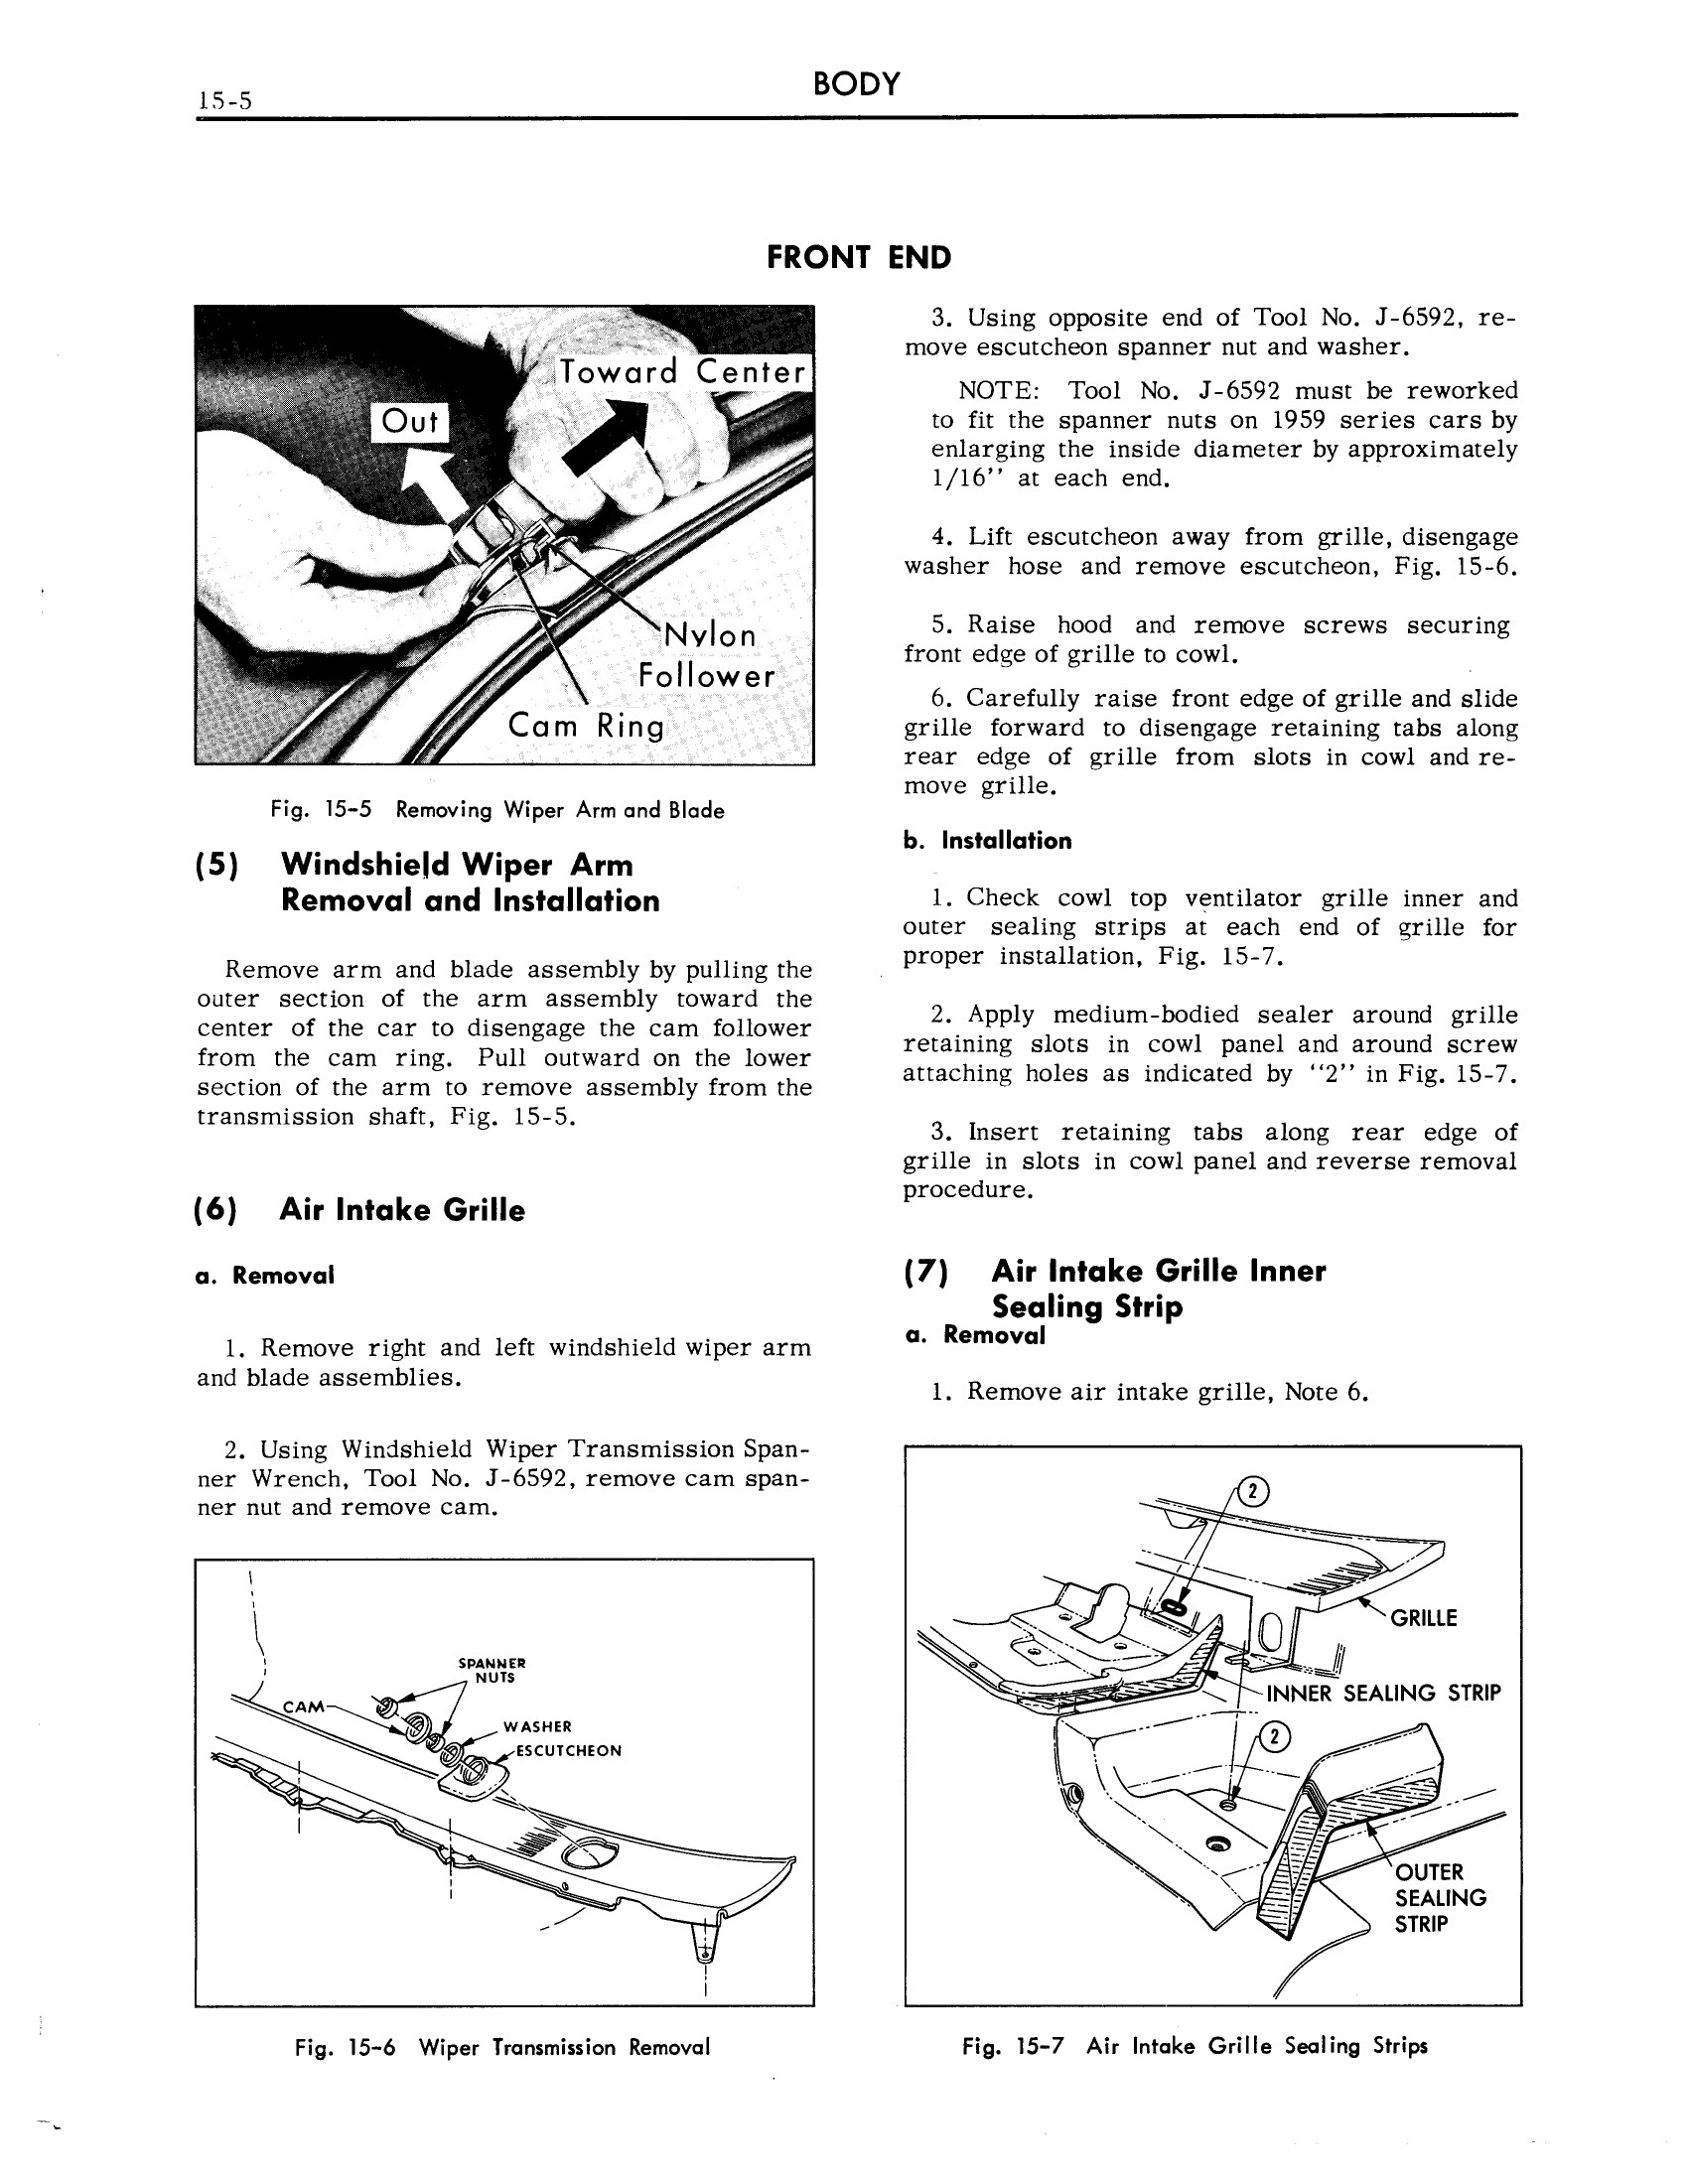 1959 Cadillac Shop Manual- Body Page 5 of 99